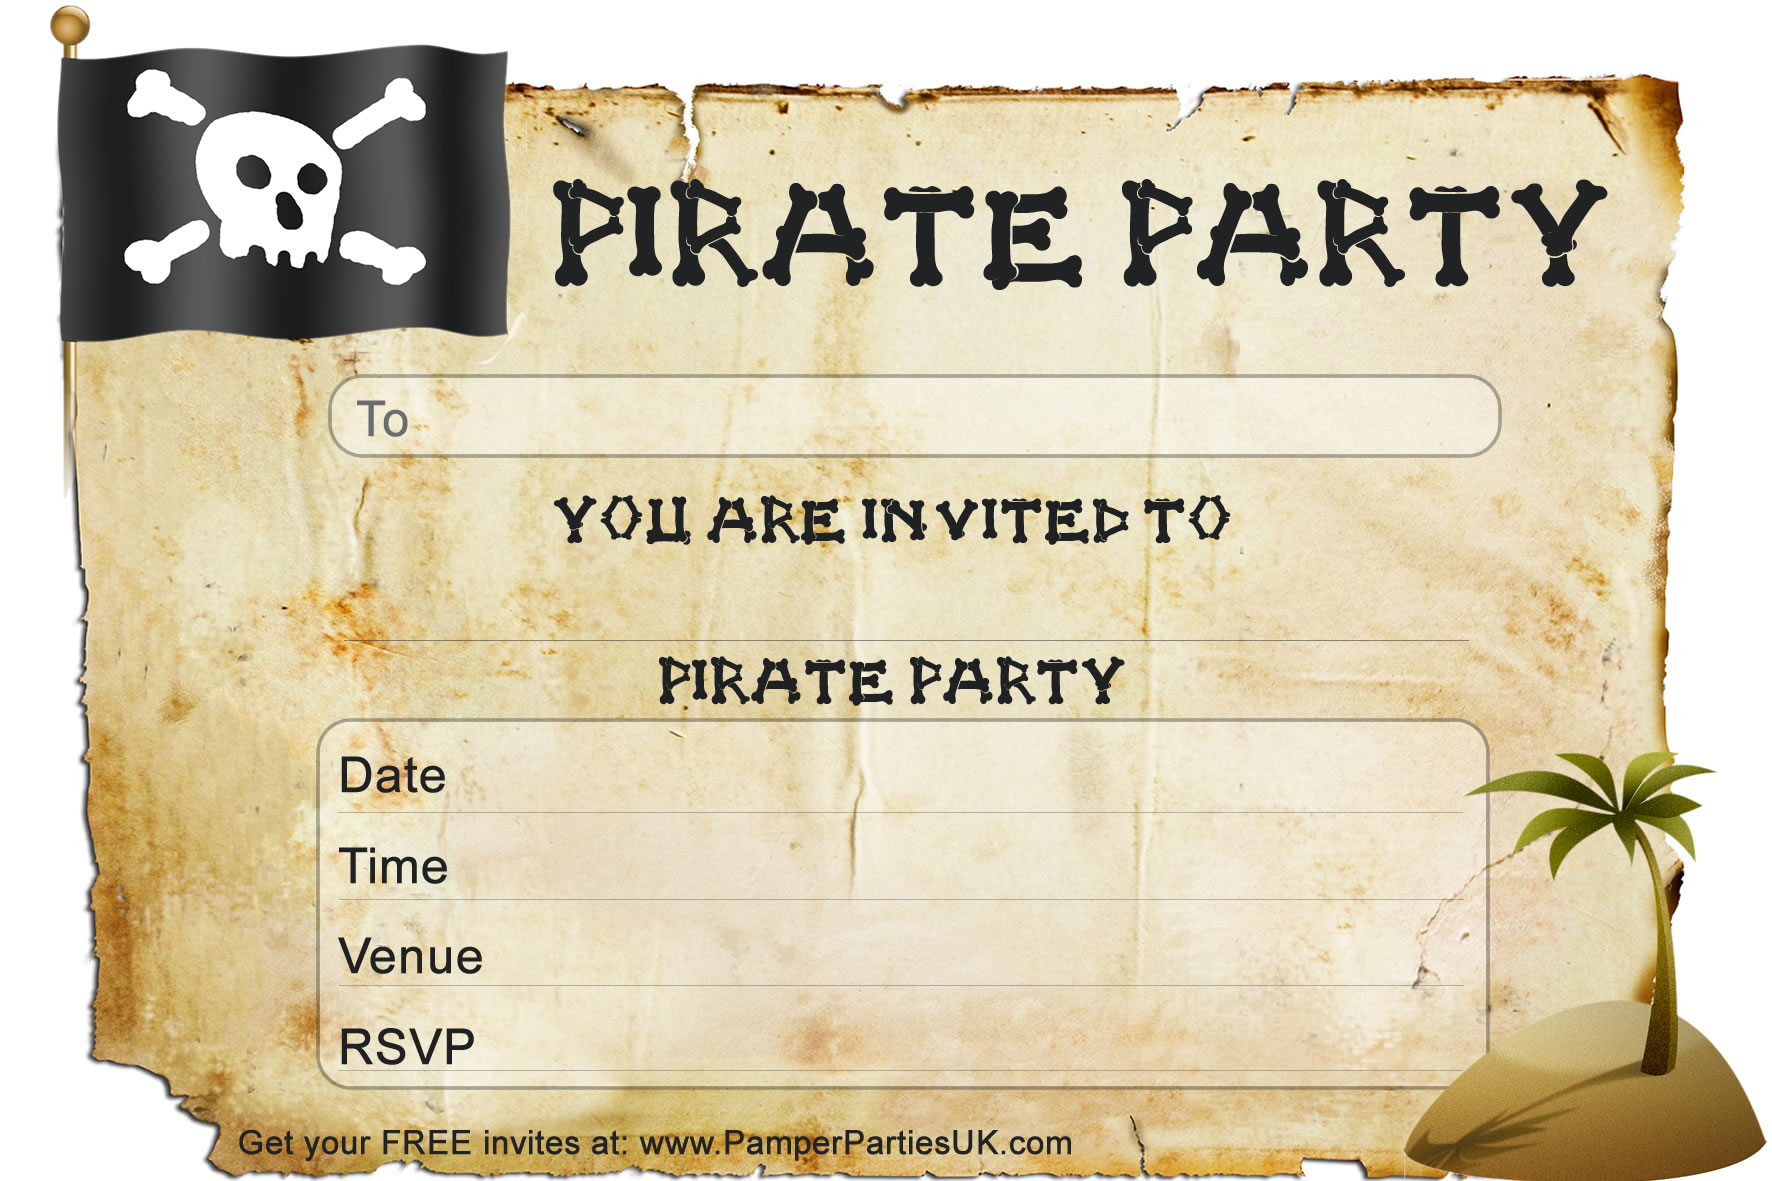 pirate themed birthday party invitation ideas ; e8fb1e4edfc1dba3d597ca0360d08330